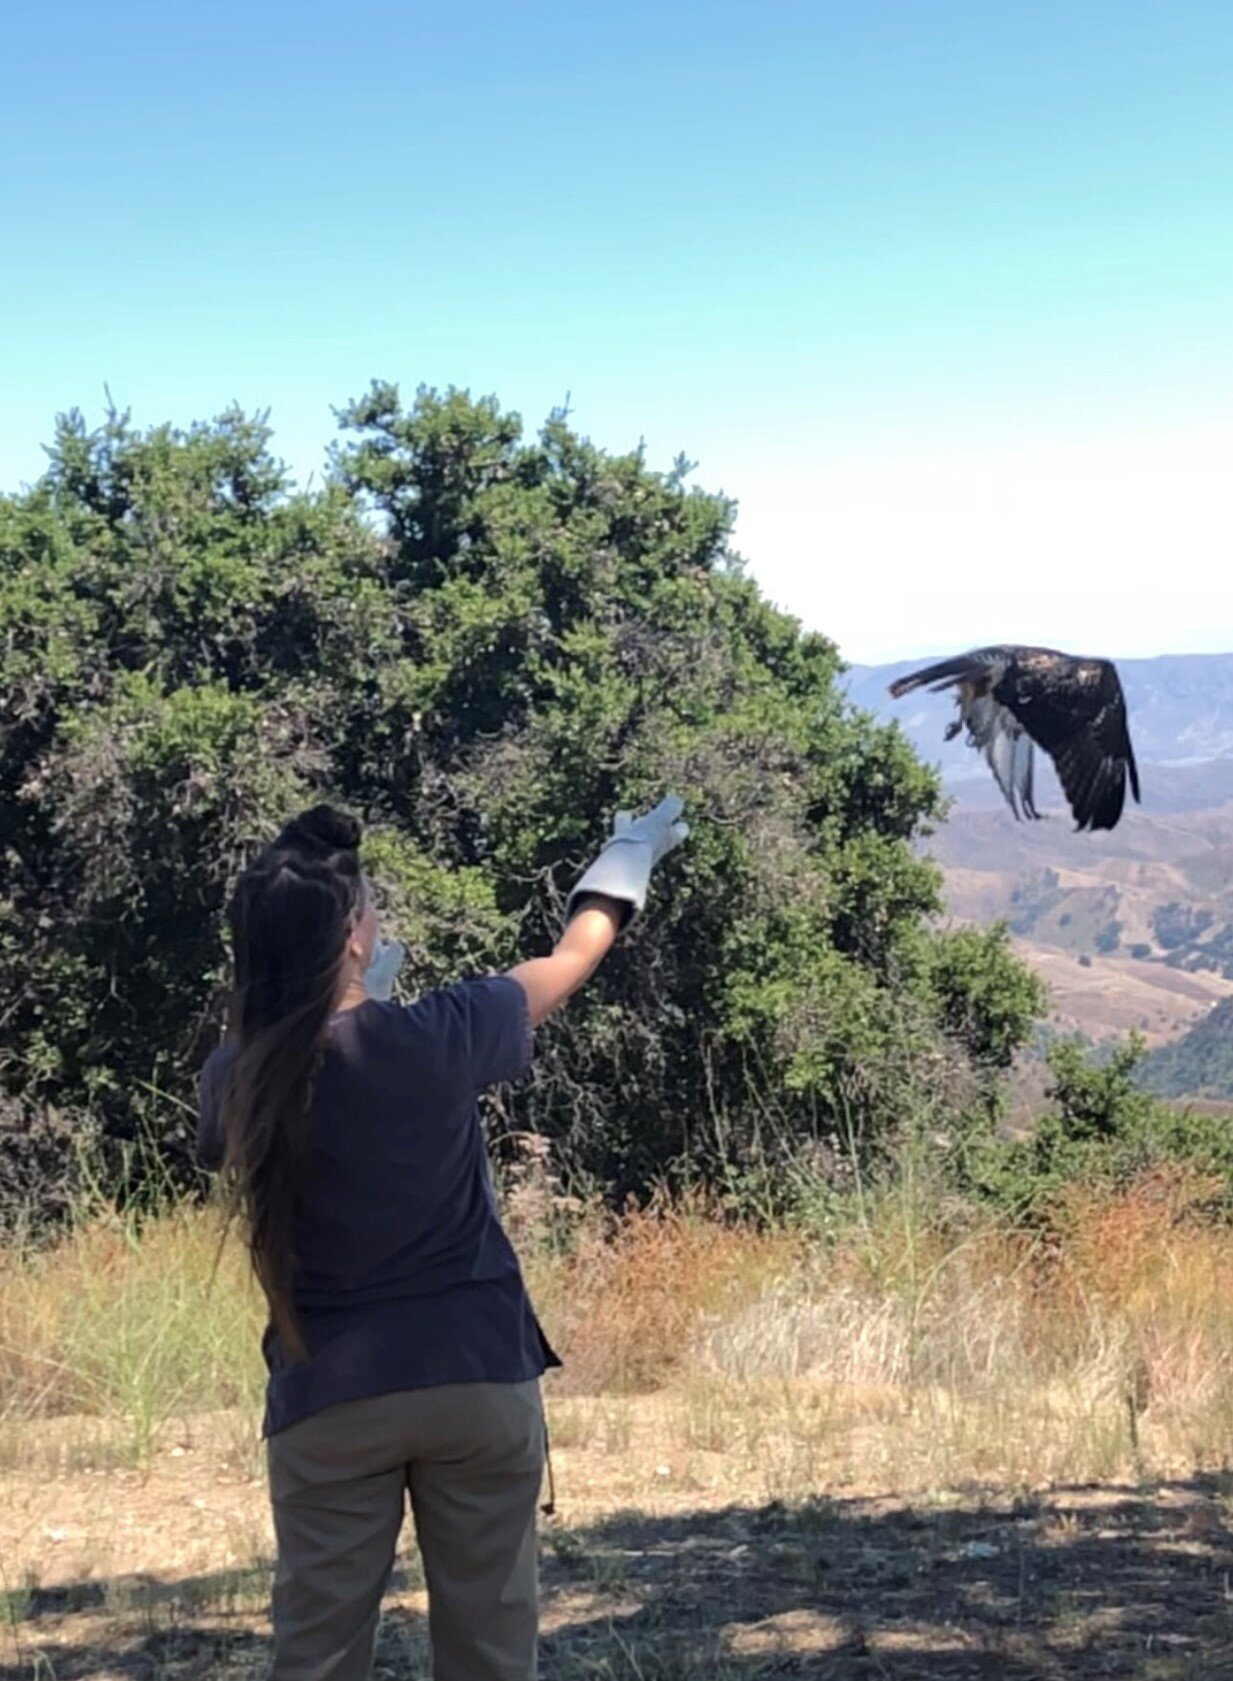 JACLYN DESANTIS from the Ojai Raptor Center (ORC) releases a Red-Tailed Hawk at Avatar's Point at Meher Mount. The raptor is being returned to the wild after its rescue and rehabilitation. Meher Mount board members James Whitson and Robert Turnage reached out to the ORC to suggest that Meher Mount would be a suitable location for raptor releases. (Photo: Cassandra Bramucci, August 15, 2019)